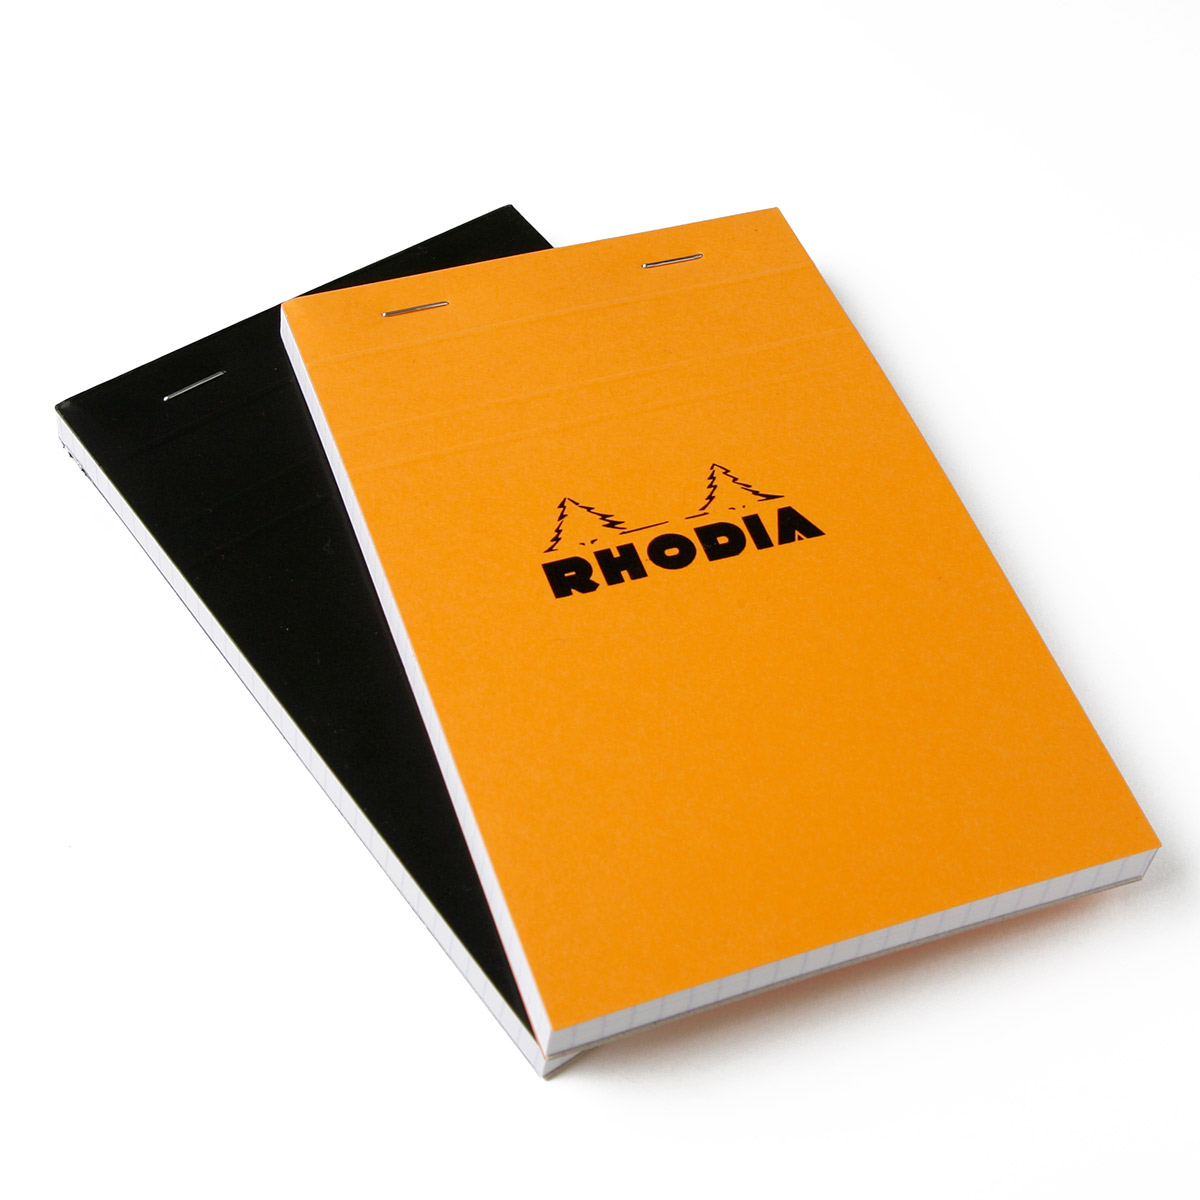 rhodia paper Review: unlimited notebook by rhodia  such a good review some friends of mine says all rhodia paper is acid-free and ink-friendly making them the.